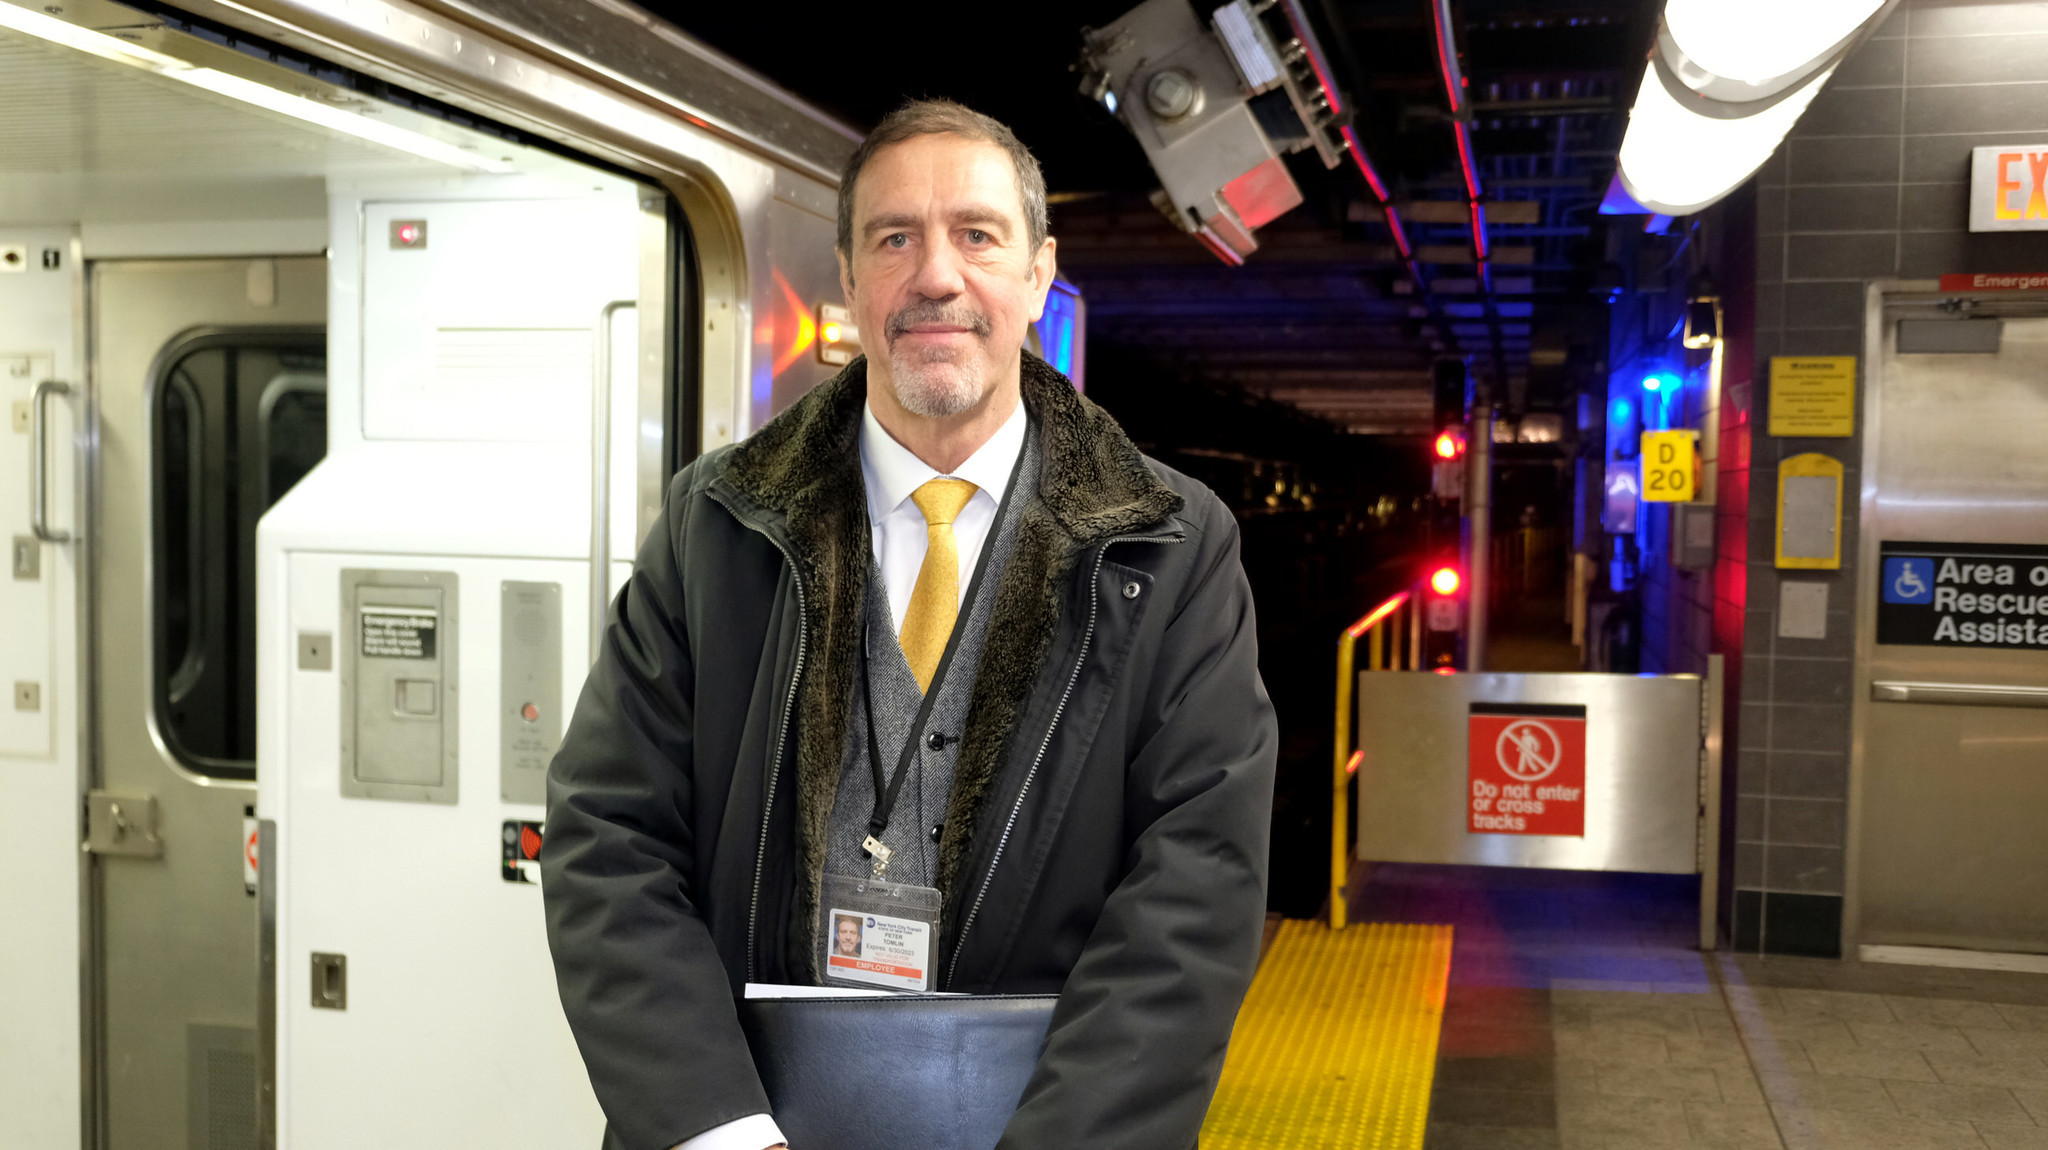 A day after losing Andy Byford as head of NYC Transit, the MTA loses another top officer